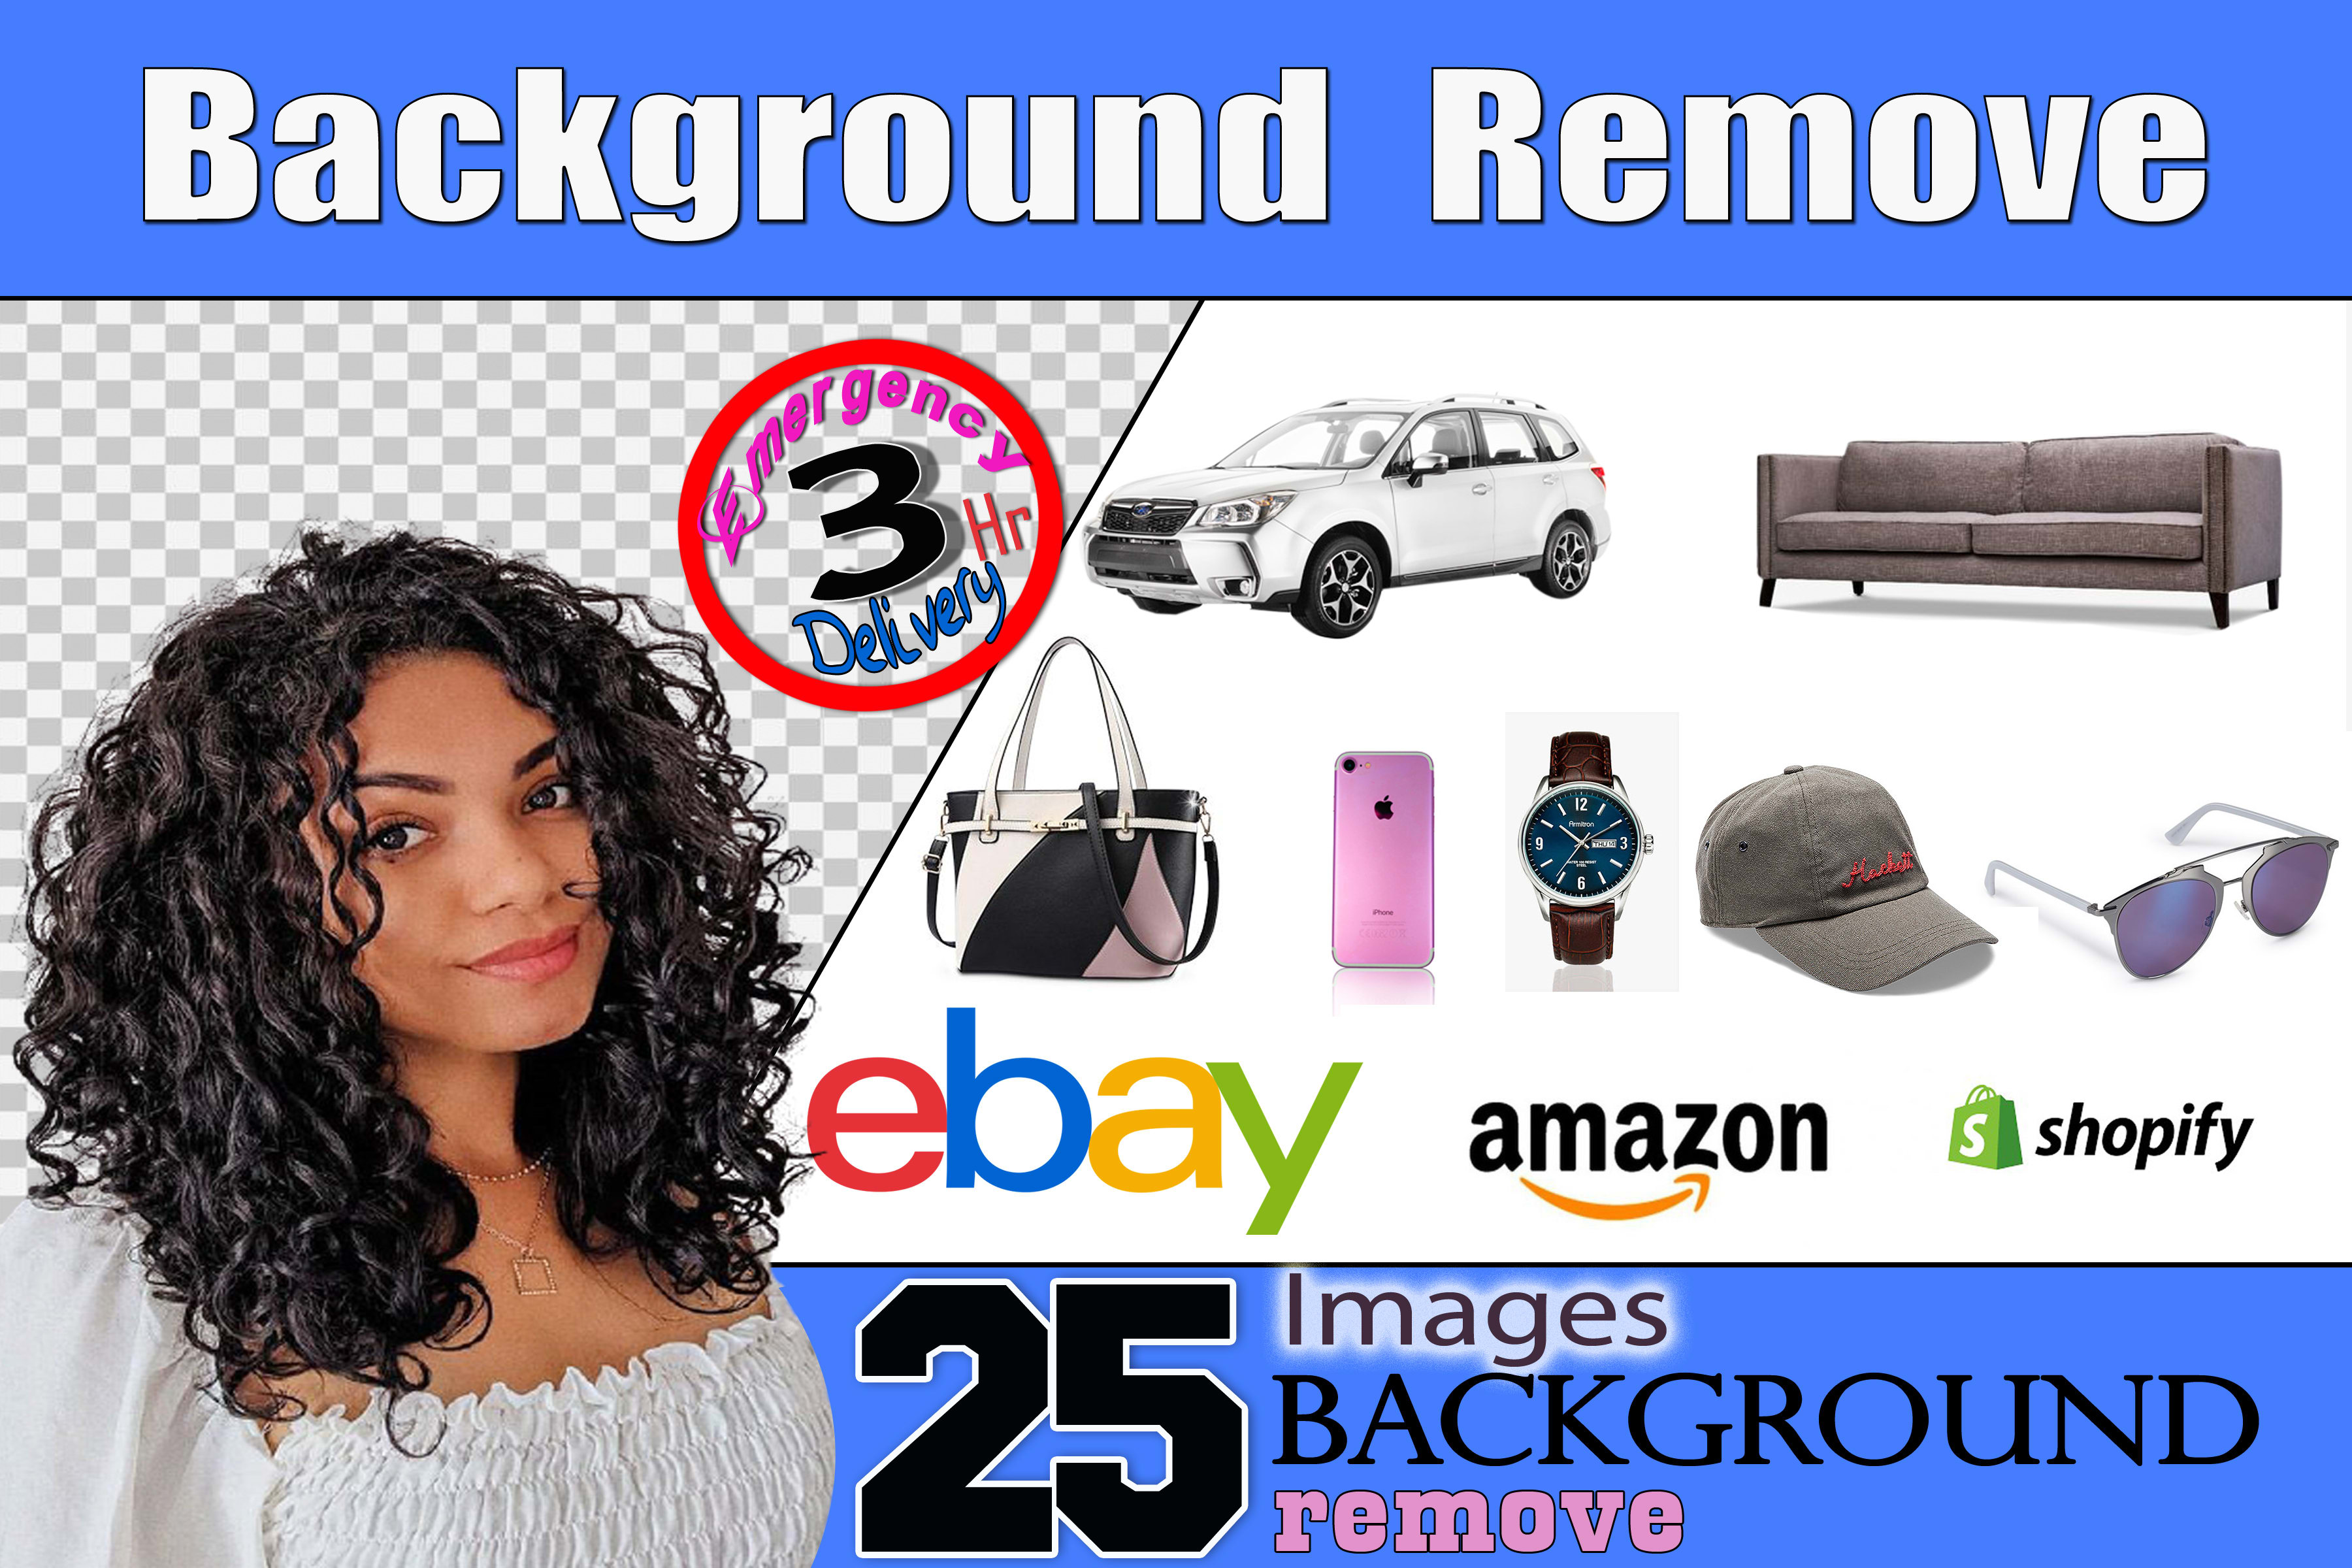 I will do image background removal and amazon listing